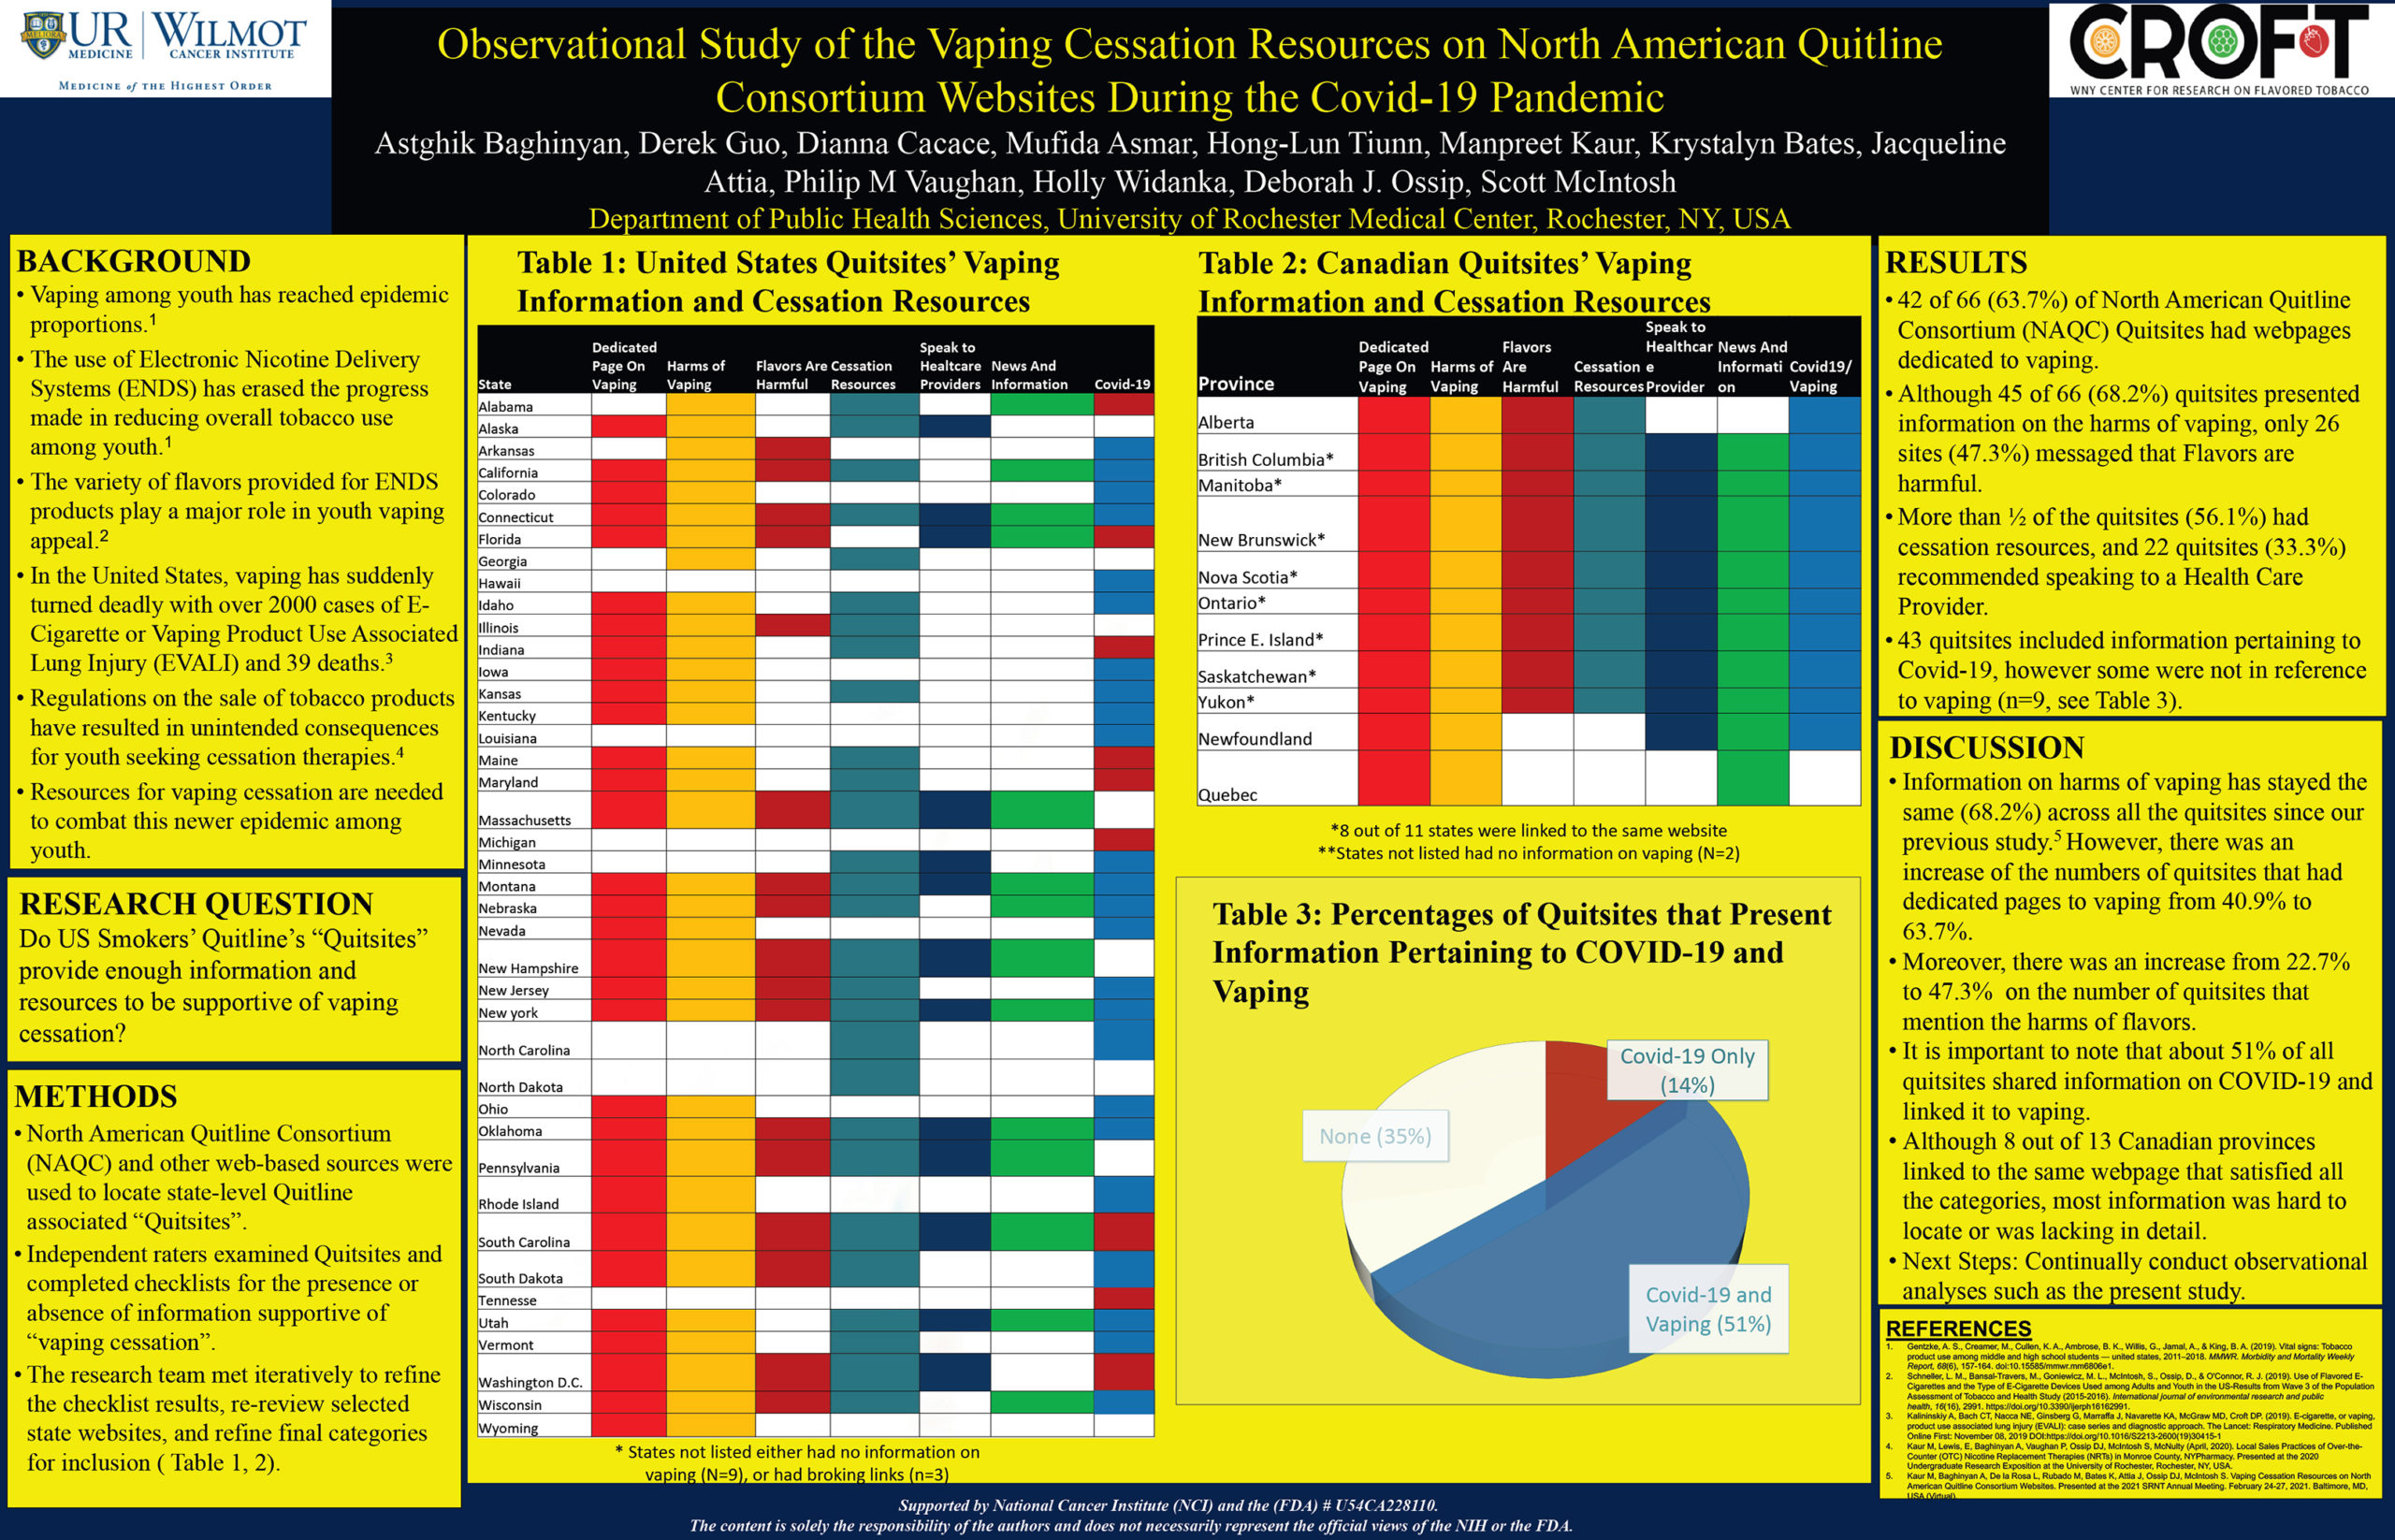 Observational Study of the Vaping Cessation Resources on North American Quitline Consortium Websites During the Covid-19 Pandemic